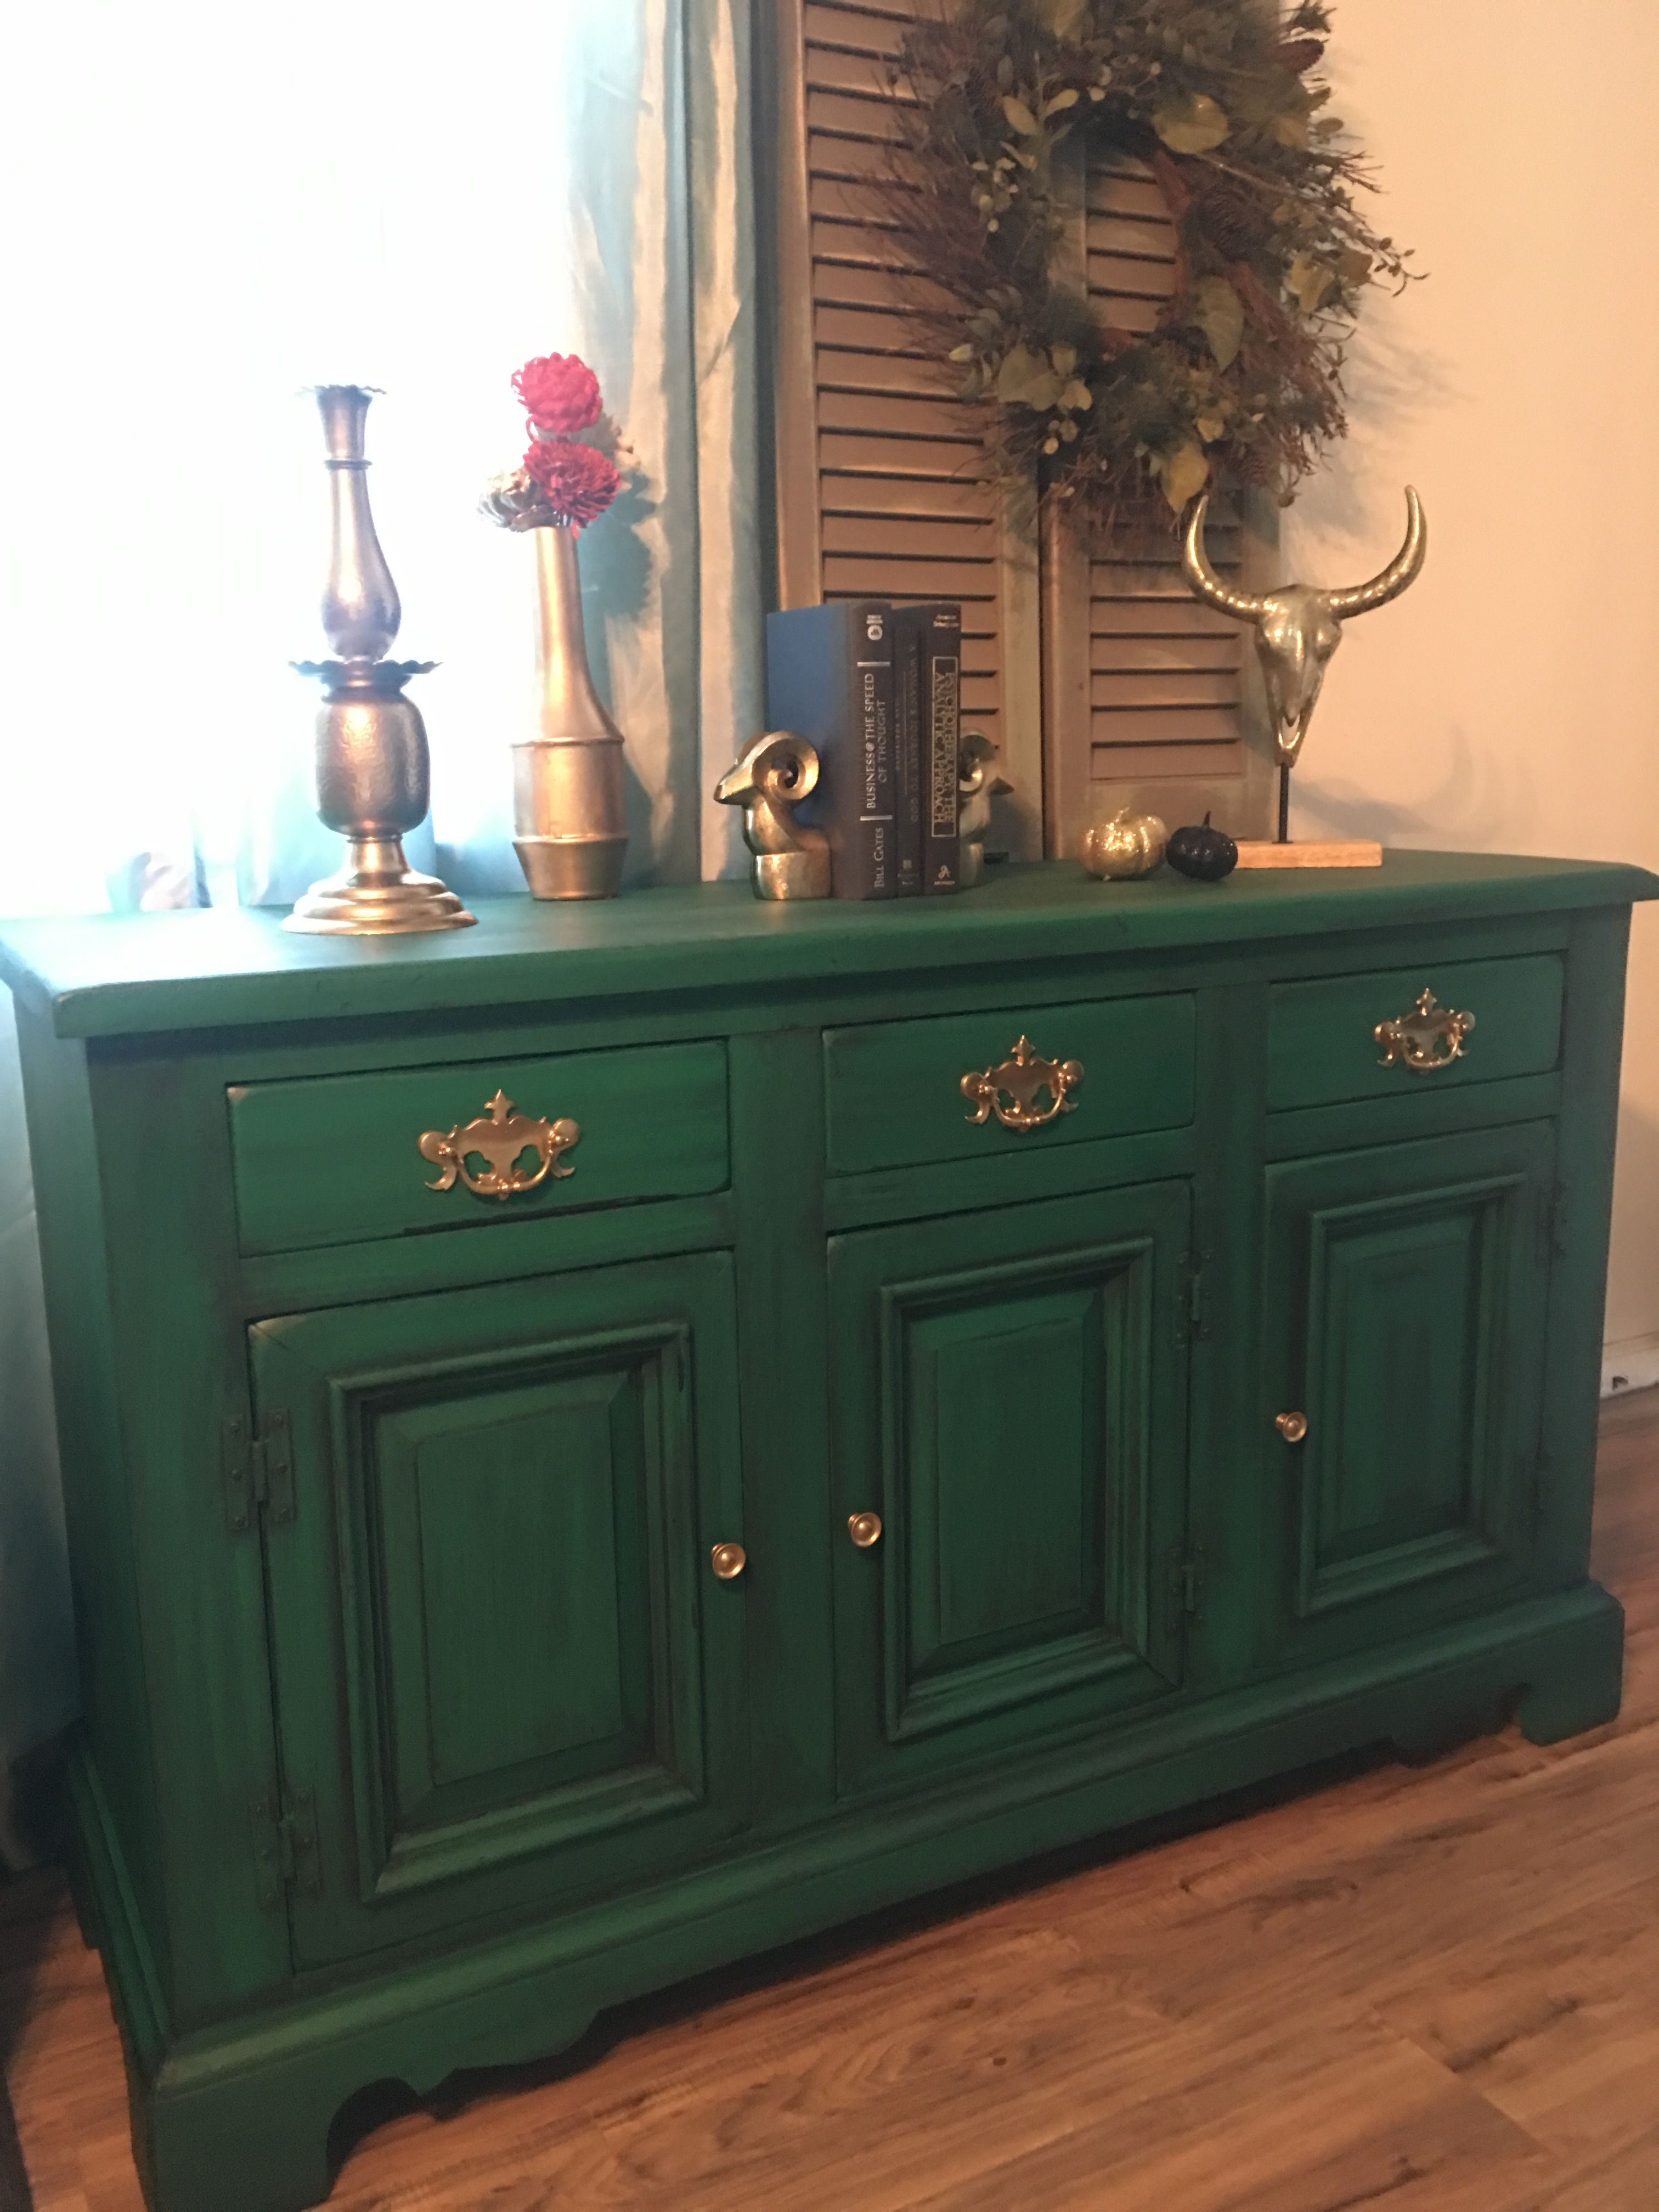 Refinished Emerald Green Buffet With Black Glaze Finish Green Painted Furniture Painted Furniture Colors Furniture Makeover